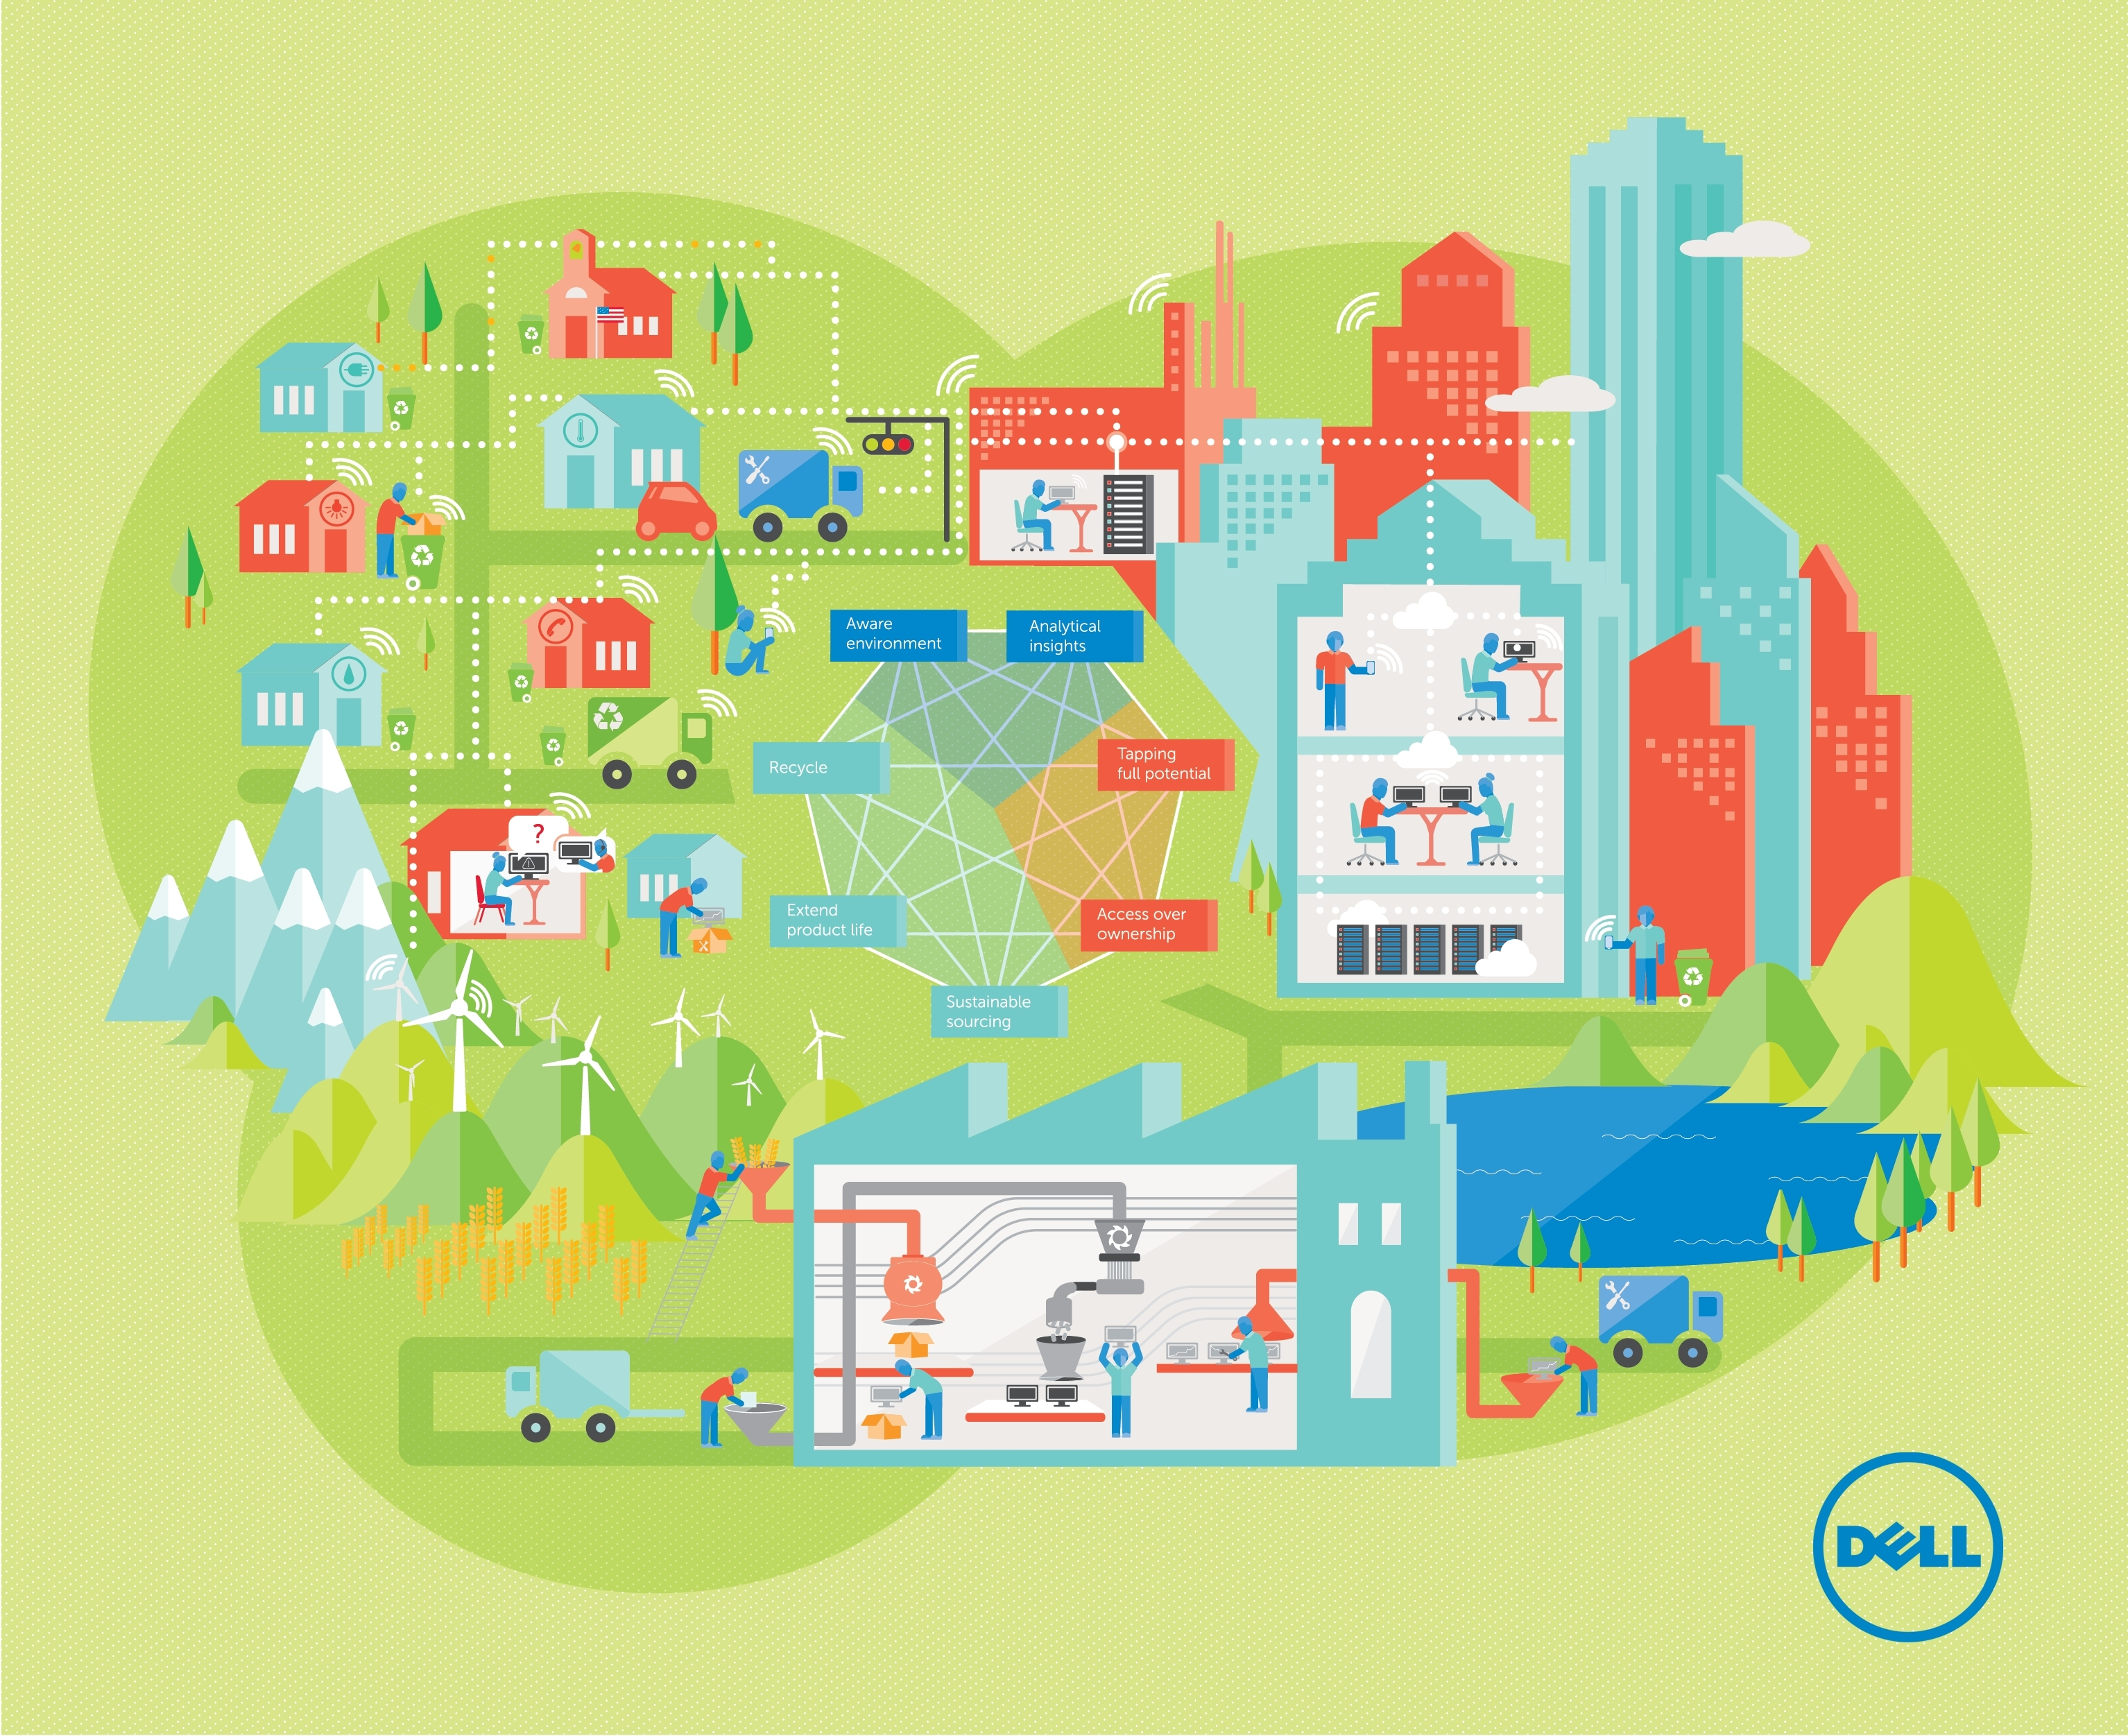 Dell Advances Circular Economy Model With Ce100 Industry